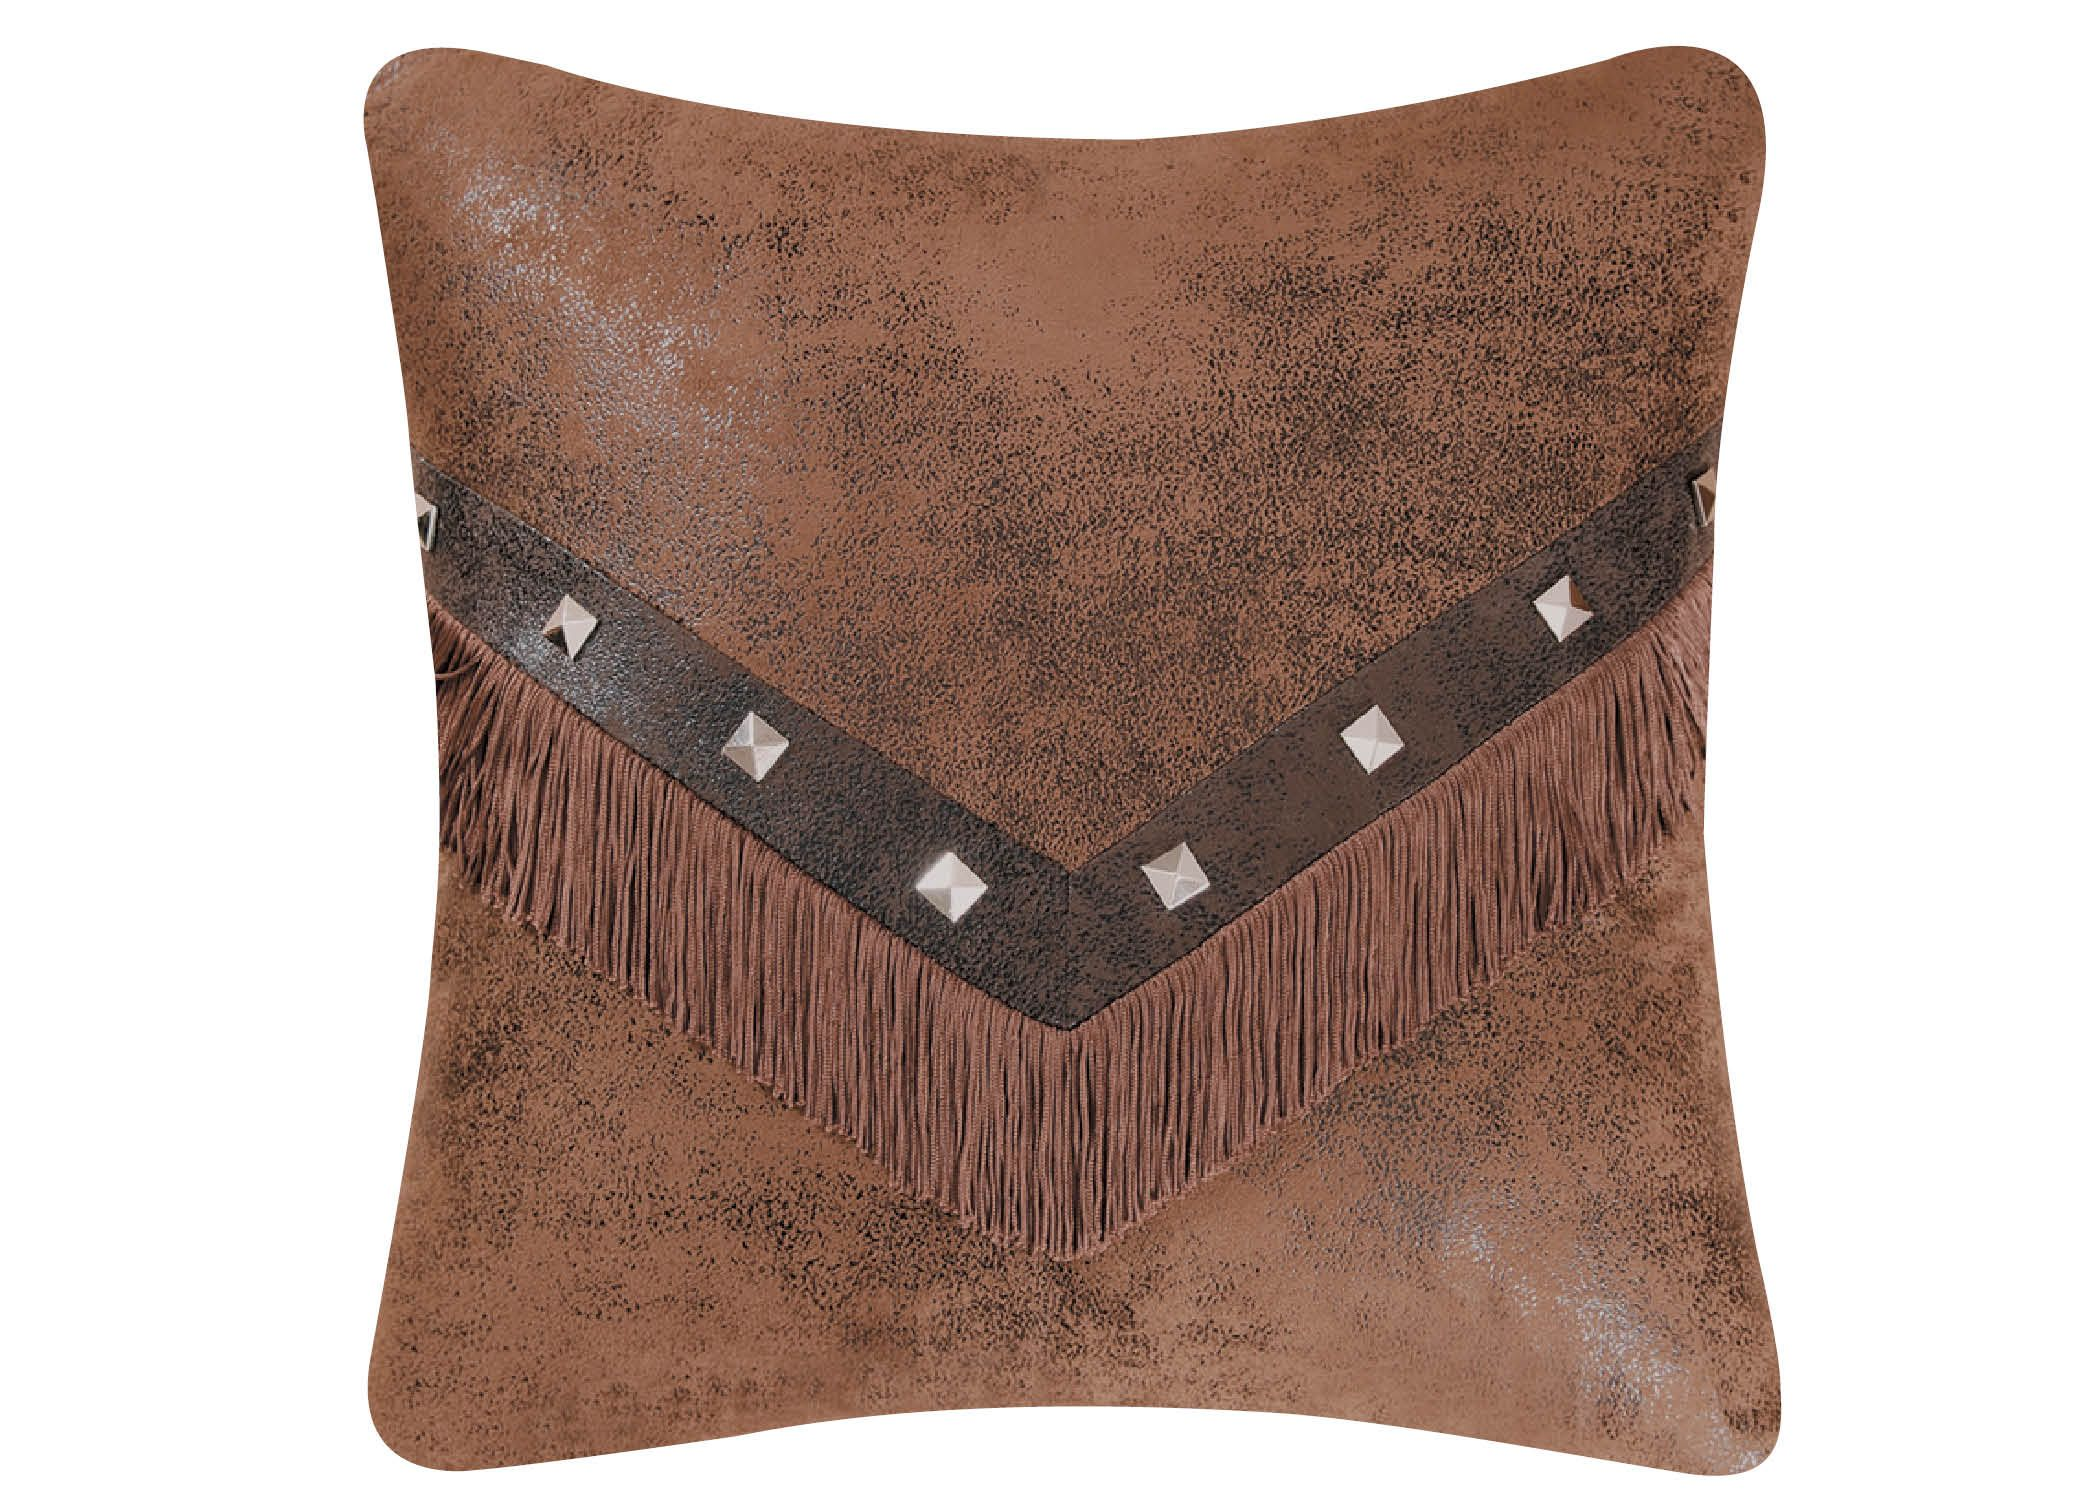 deerskin throws pillow and style decor decorative cushion accessories gallery throw pillows blanket western with fringe